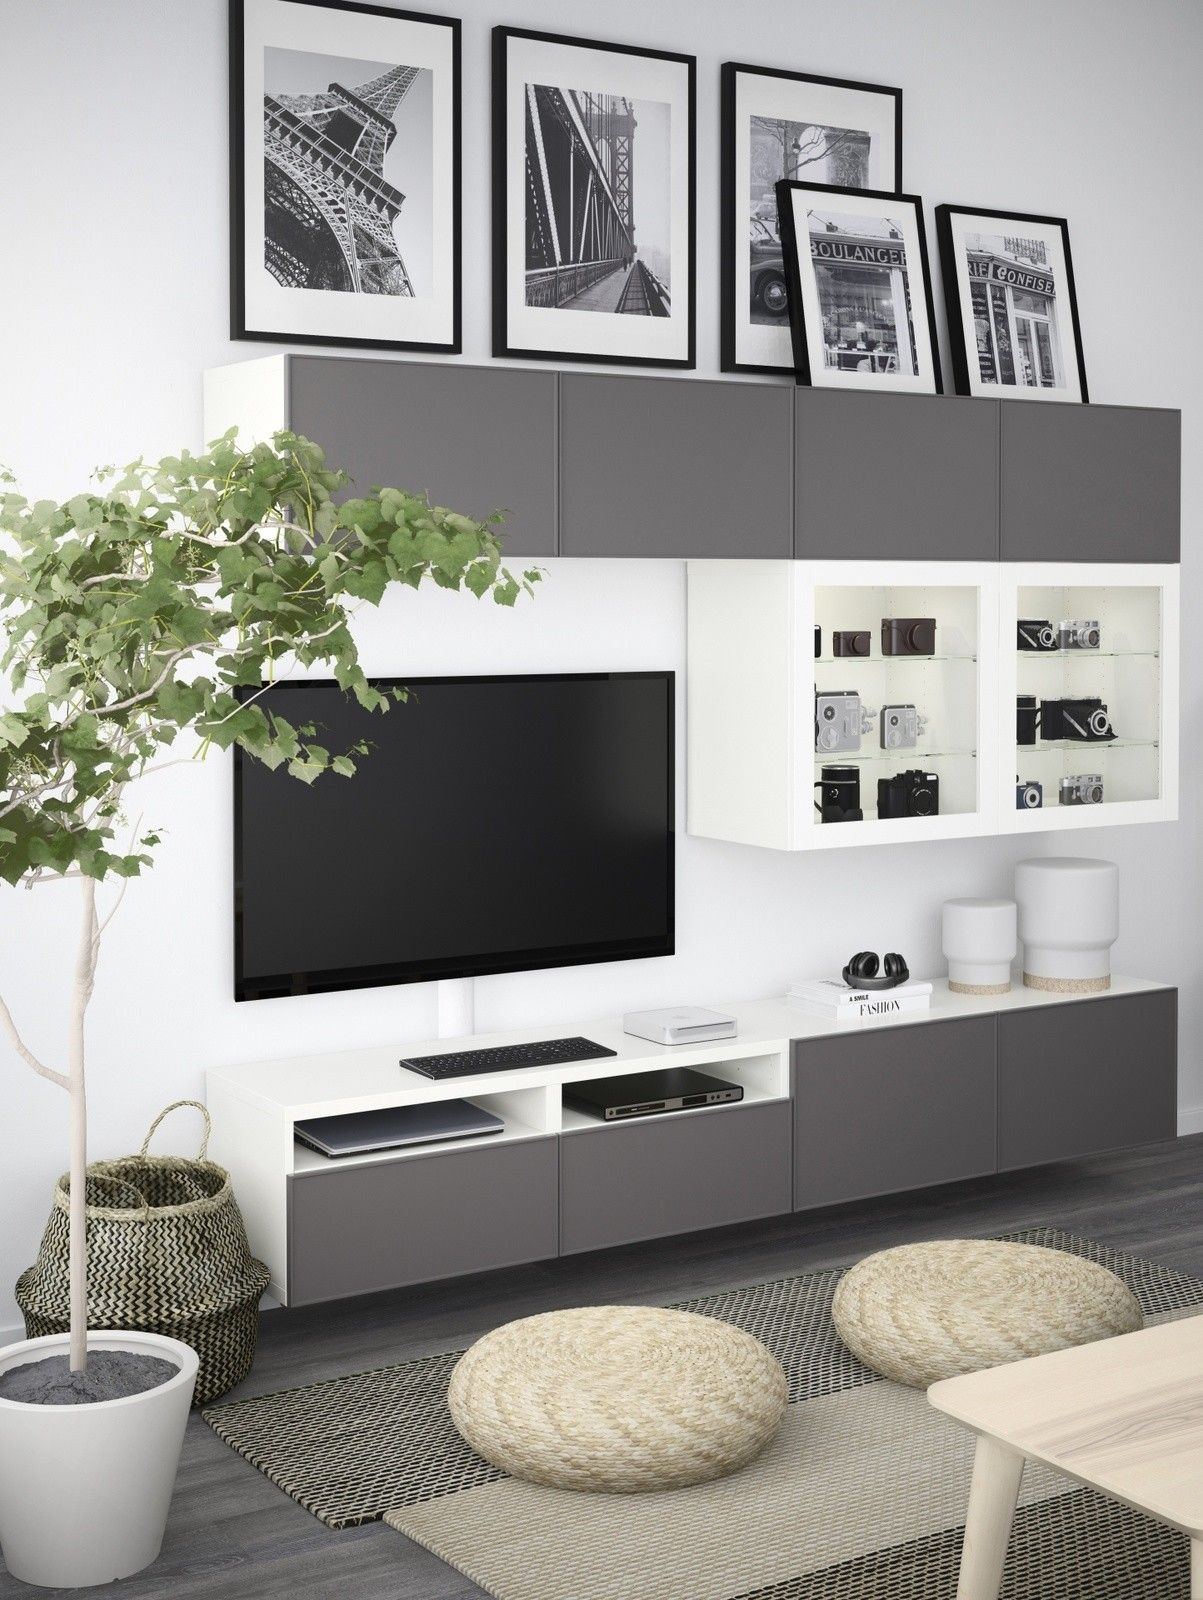 mur besta mieszkanko pinterest meuble tv tv et meubles. Black Bedroom Furniture Sets. Home Design Ideas